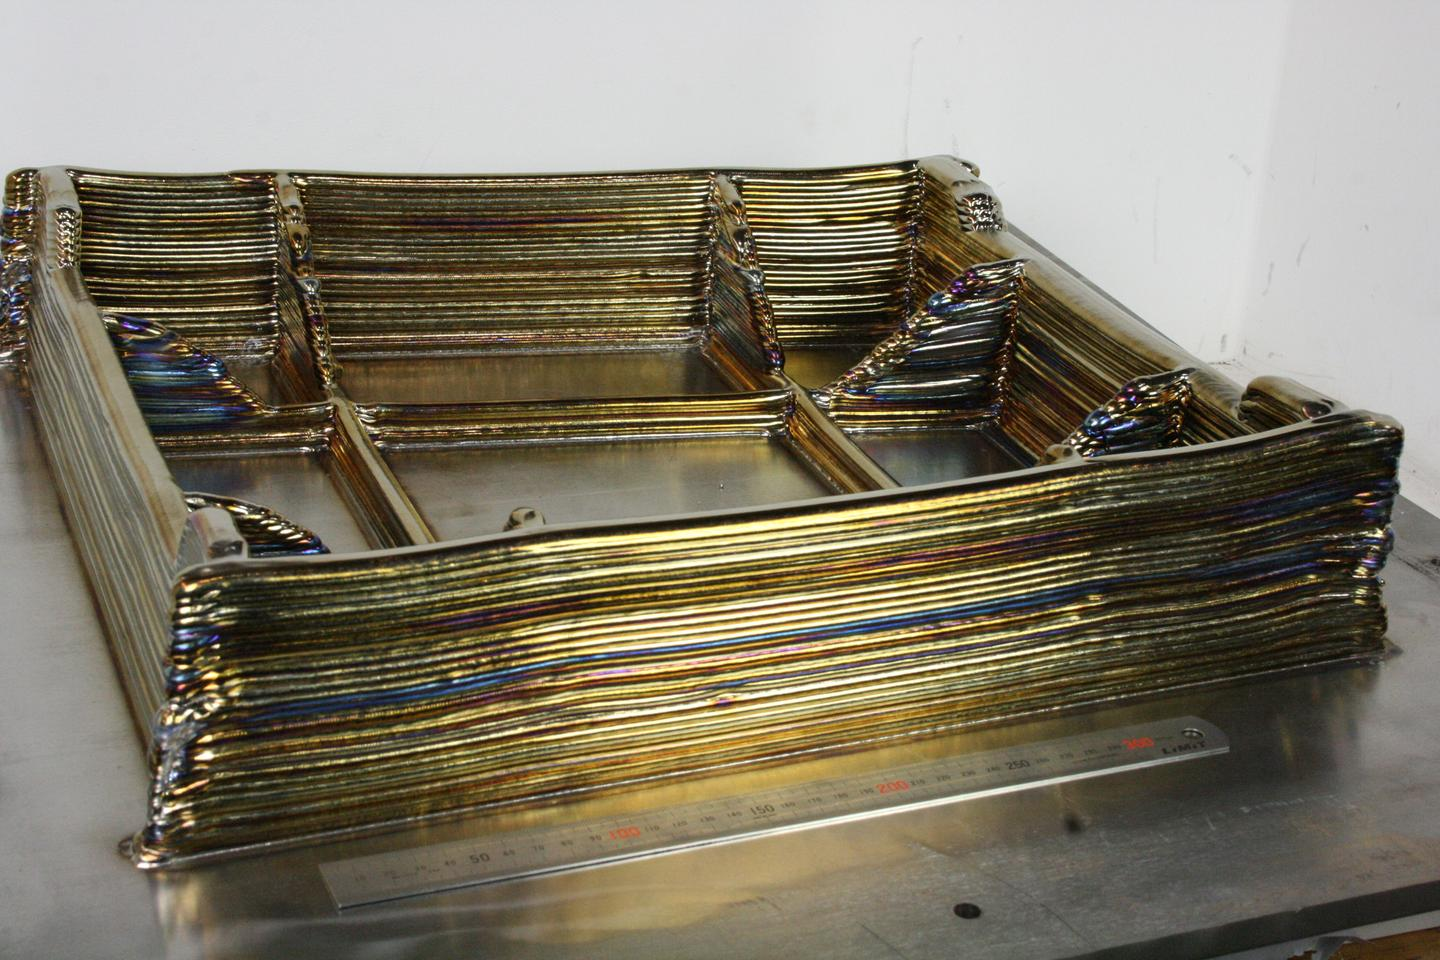 Sandwich structure aerofoil demonstrator made of Titanium using 3D-printing technology (Photo: Cranfield University)